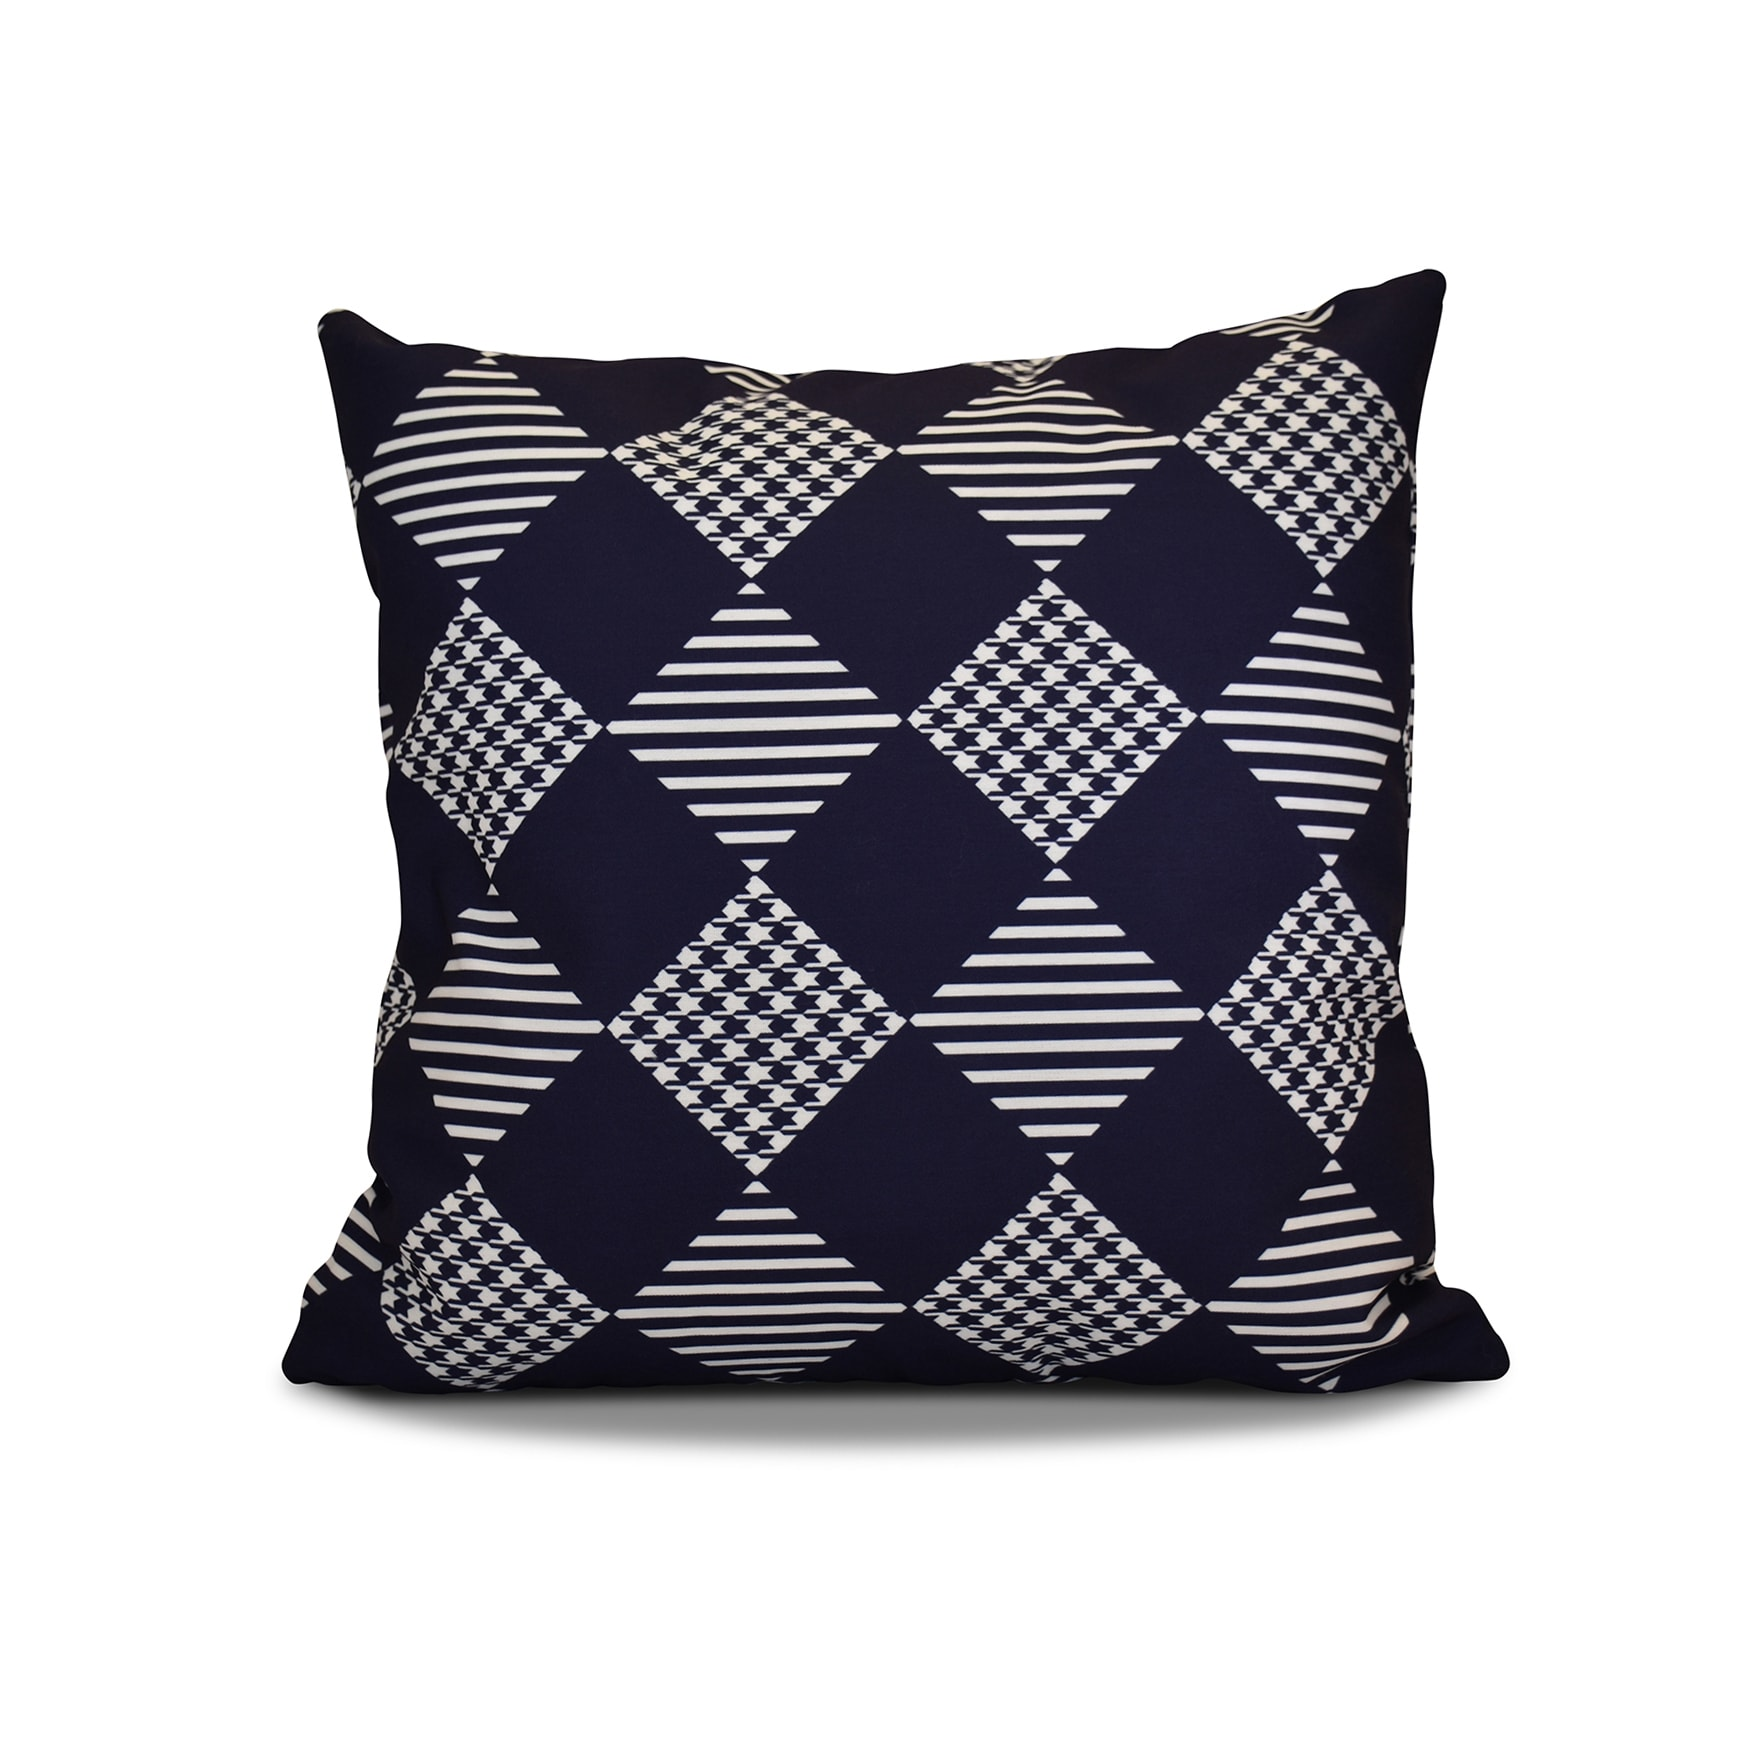 20 x 20-inch Check It Twice Geometric Holiday Print Pillow (Teal)